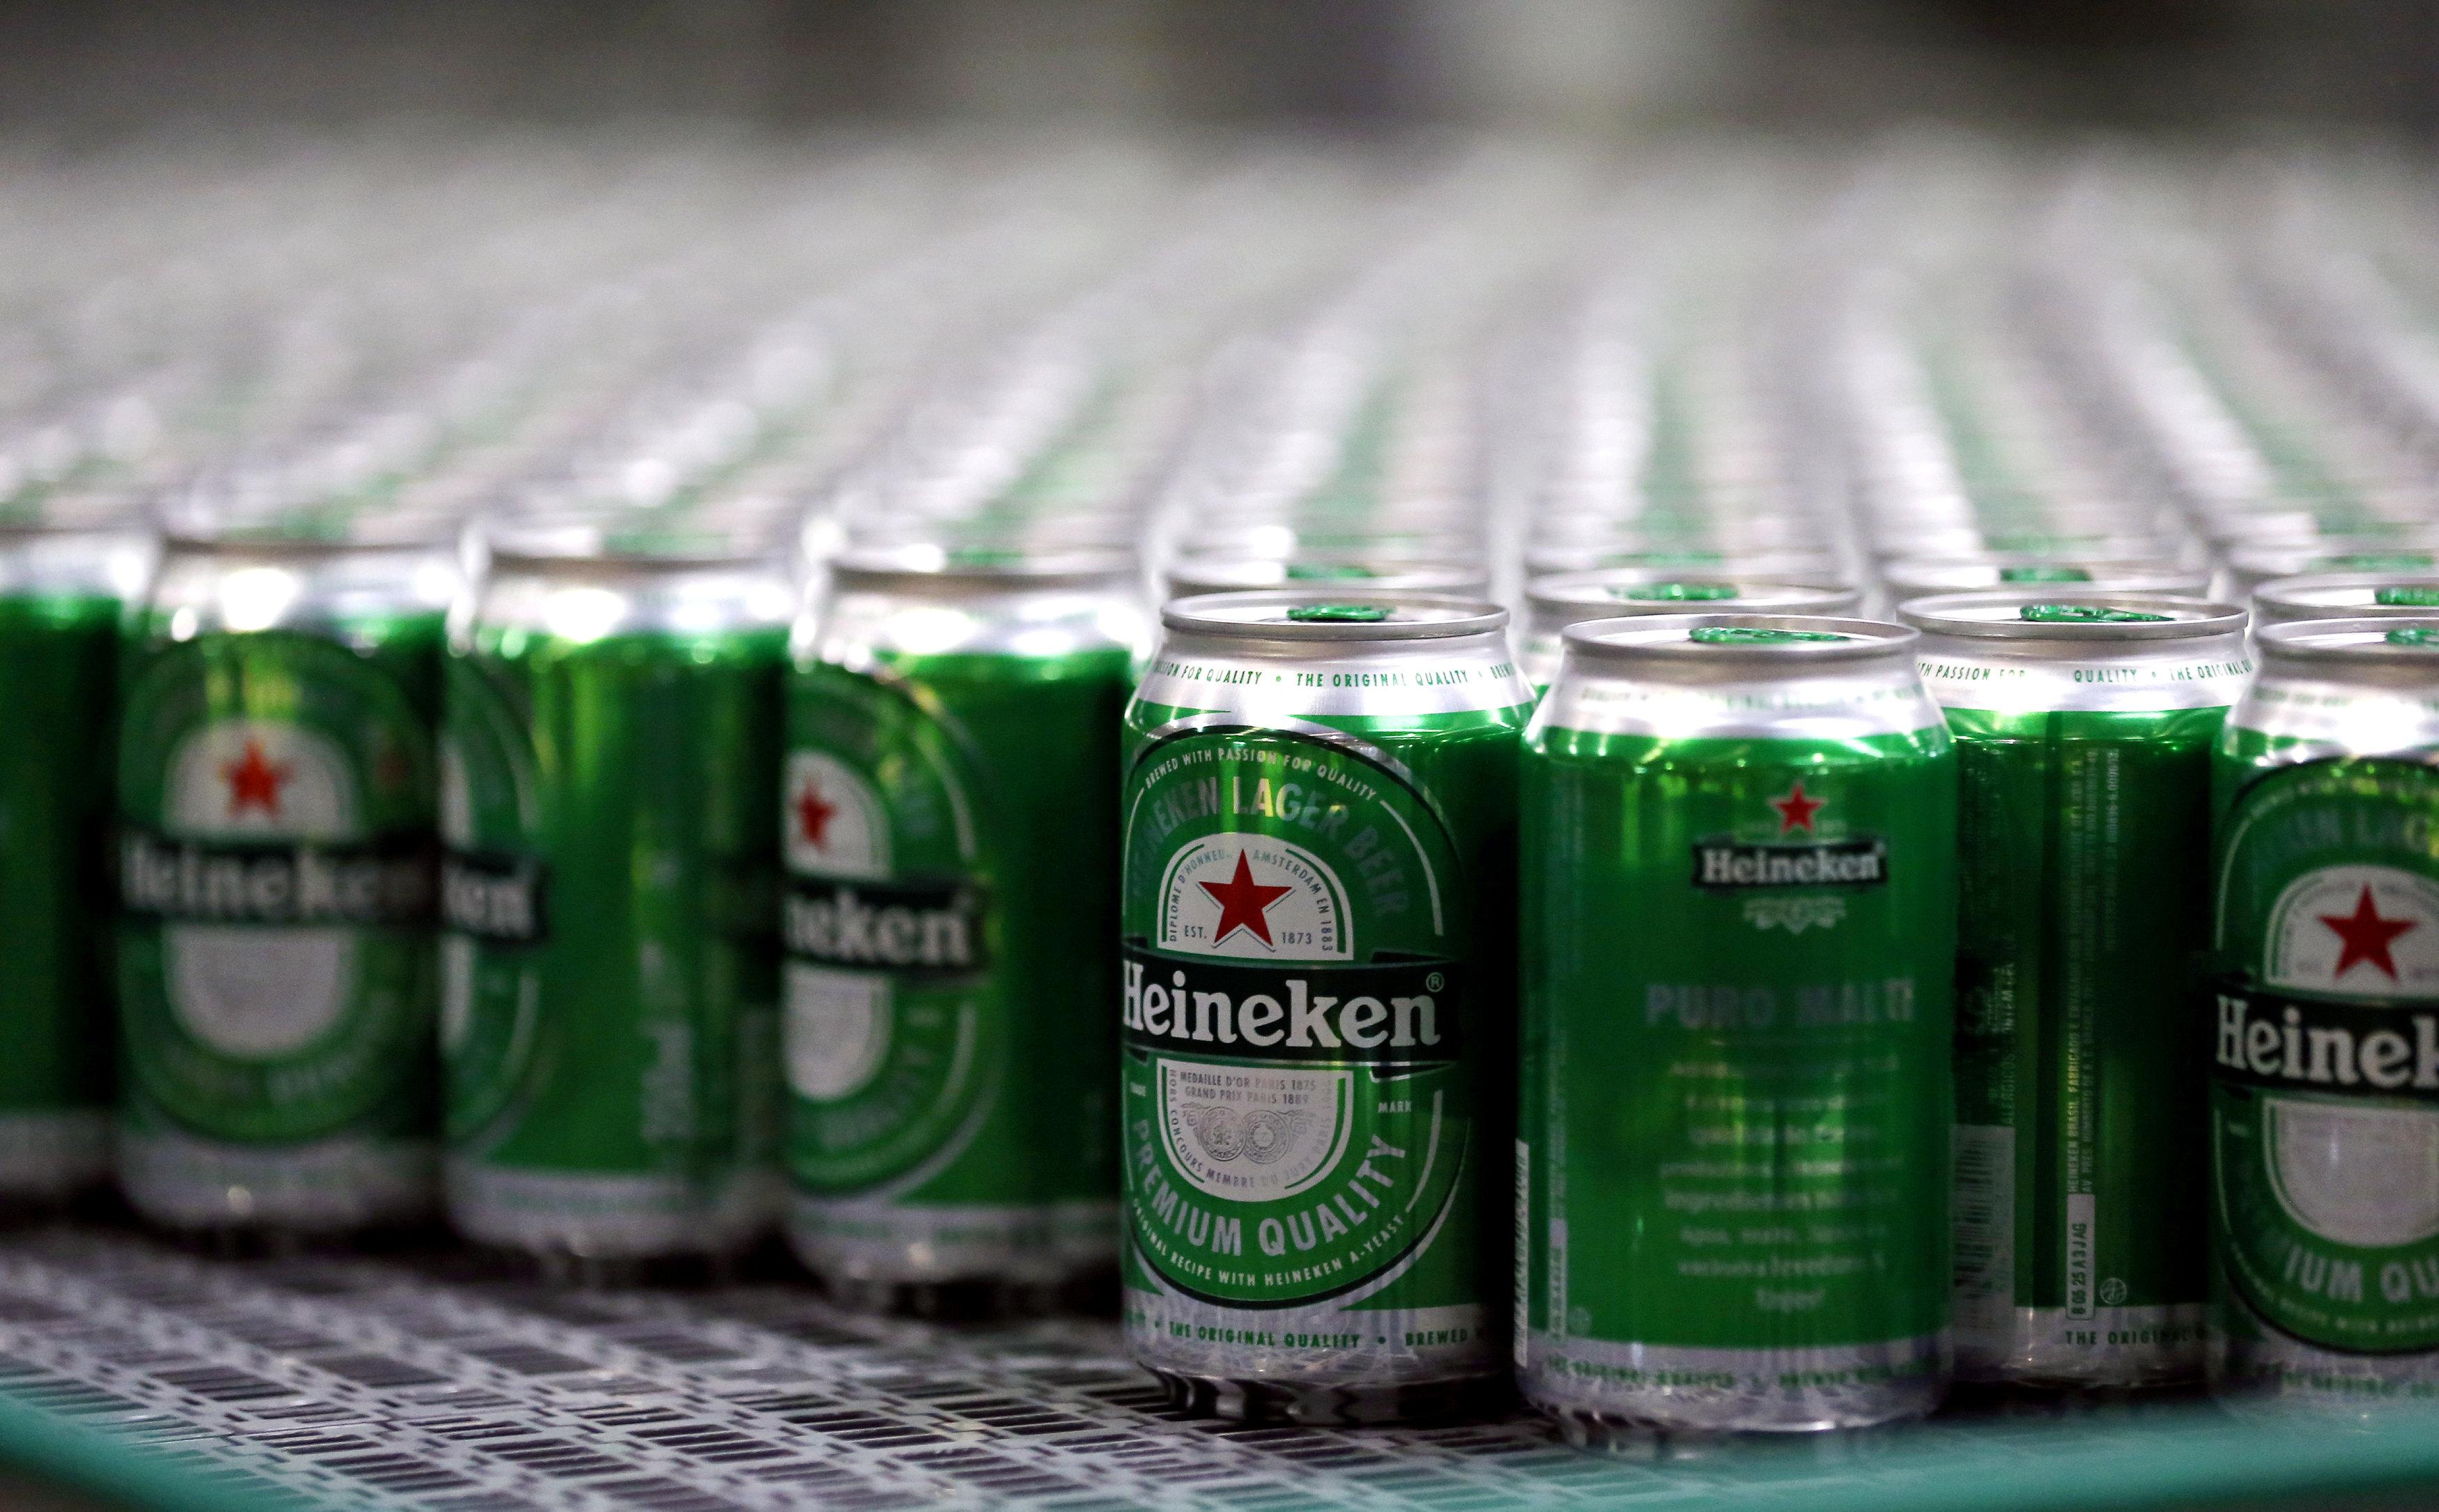 Heineken beers are seen on a production line at the Heineken brewery in Jacarei, Brazil June 12, 2018.  Paulo Whitaker